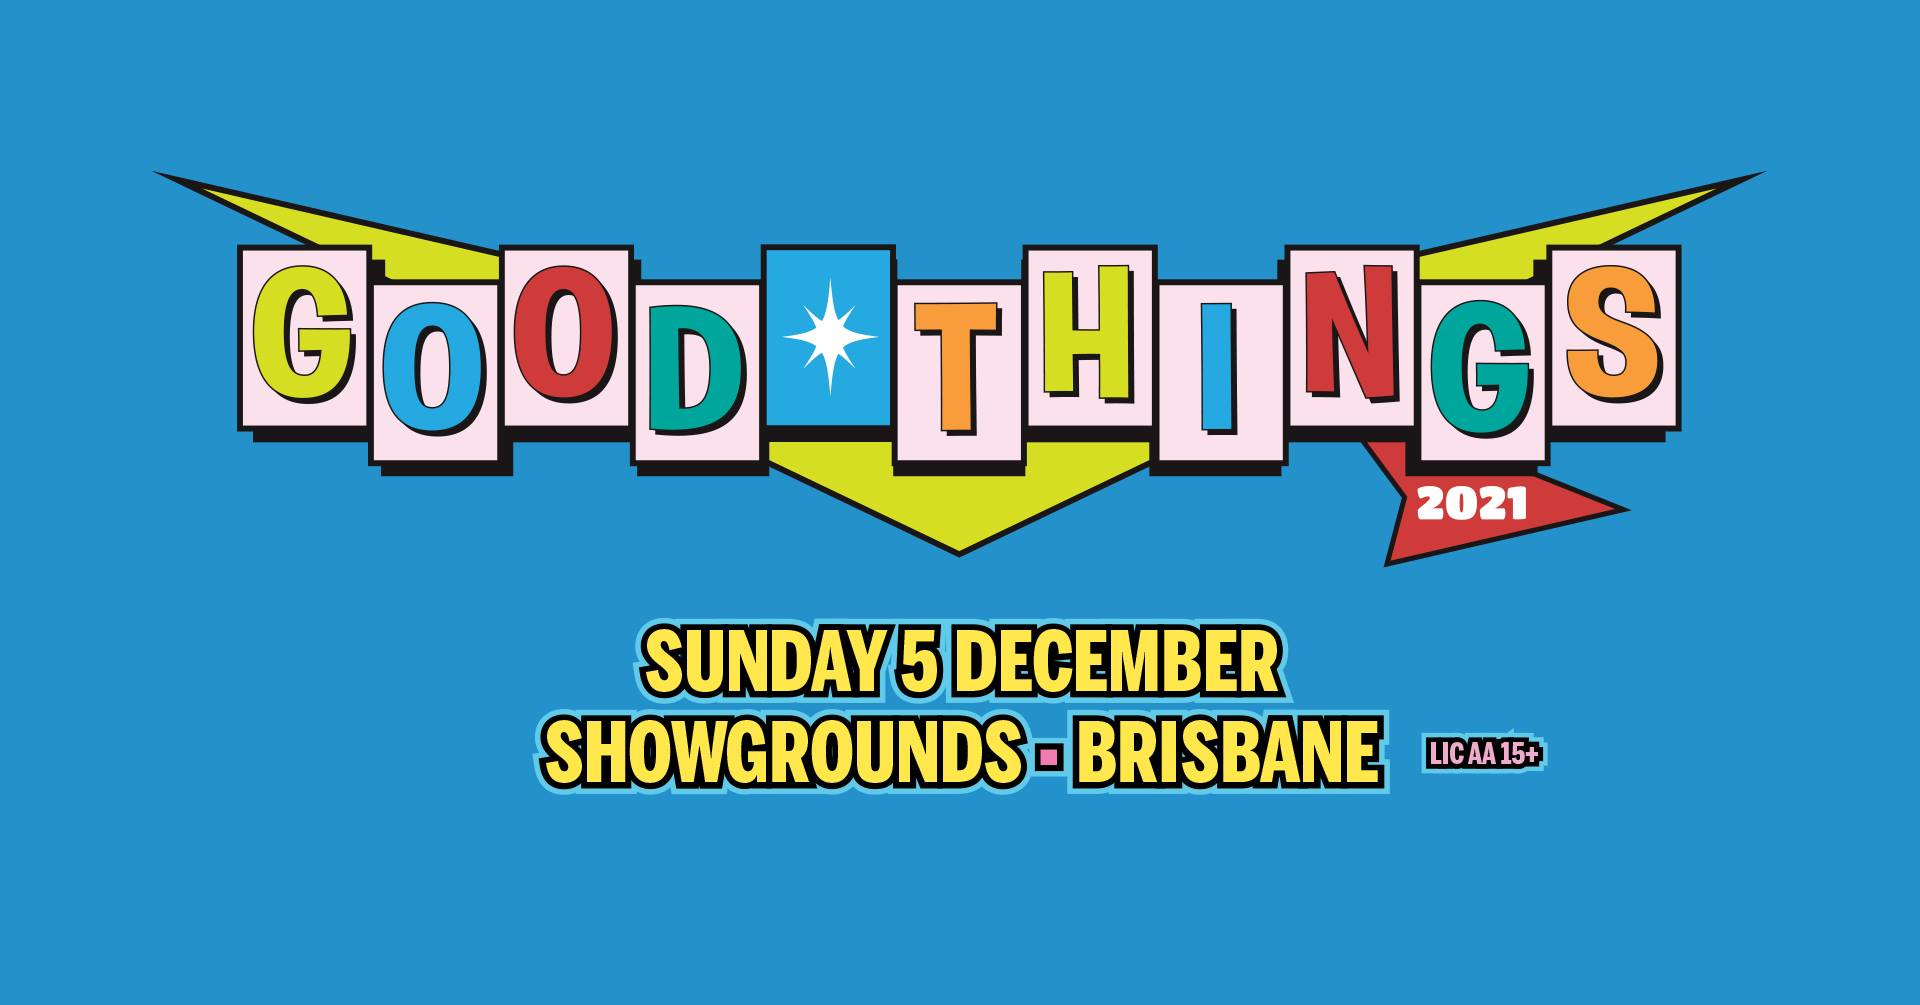 2020 CAN FRICK OFF!  GOOD THINGS FESTIVAL  ANNOUNCES ITS RETURN IN DECEMBER 2021